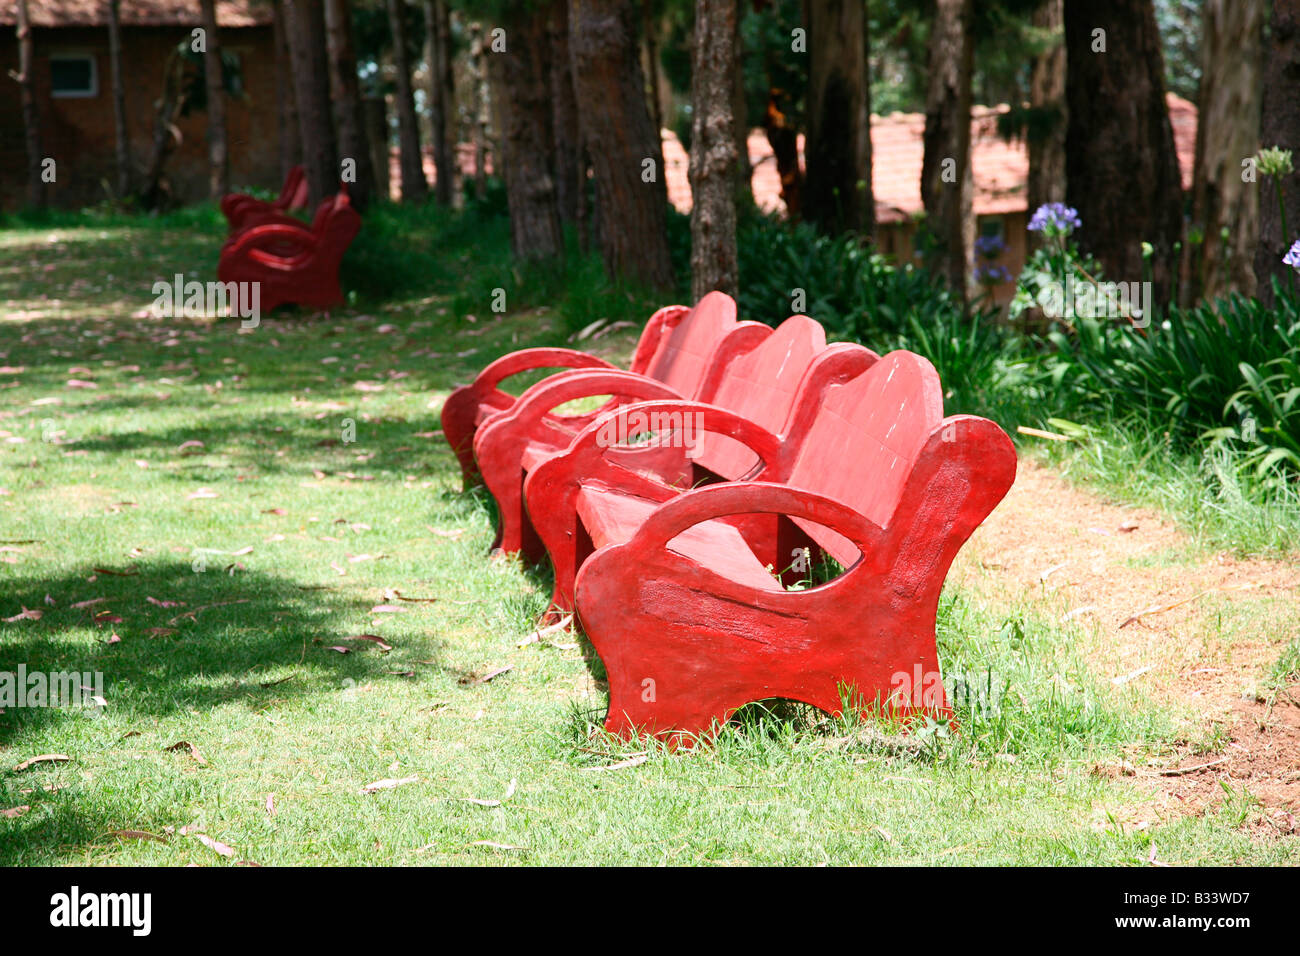 A Concrete Red Garden Bench In Ooty,india